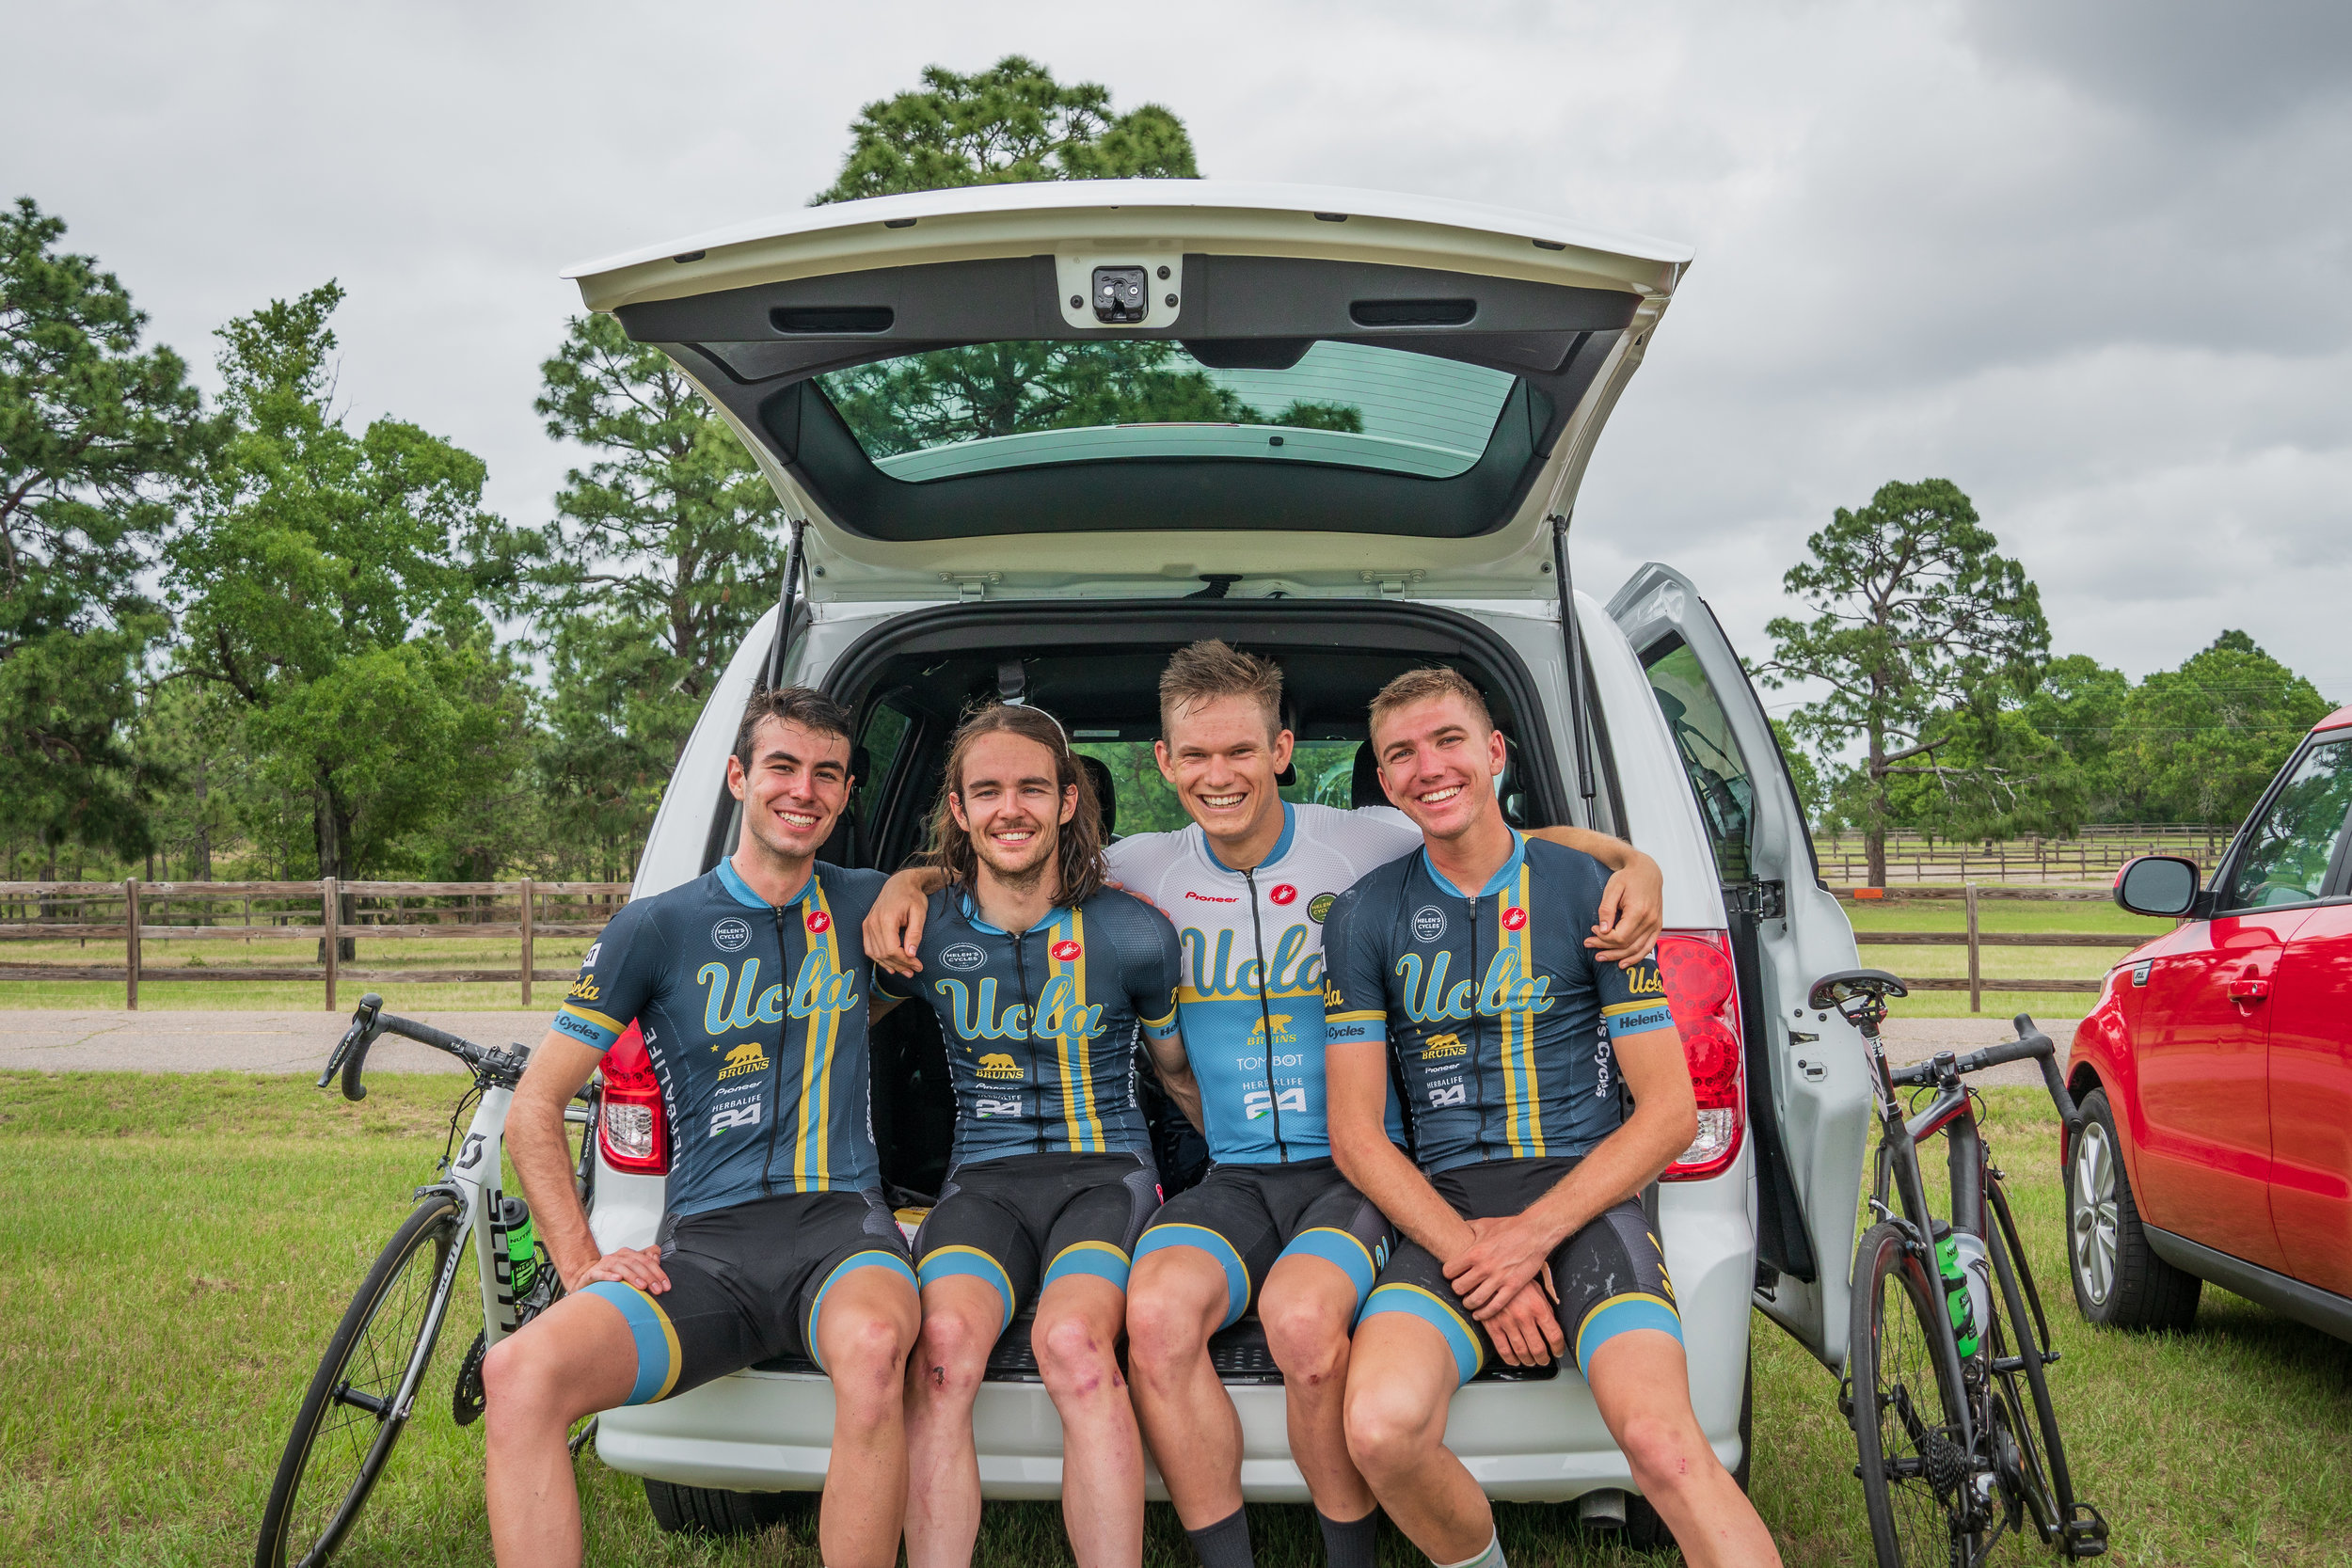 Your 2019 UCLA Cycling Nationals team